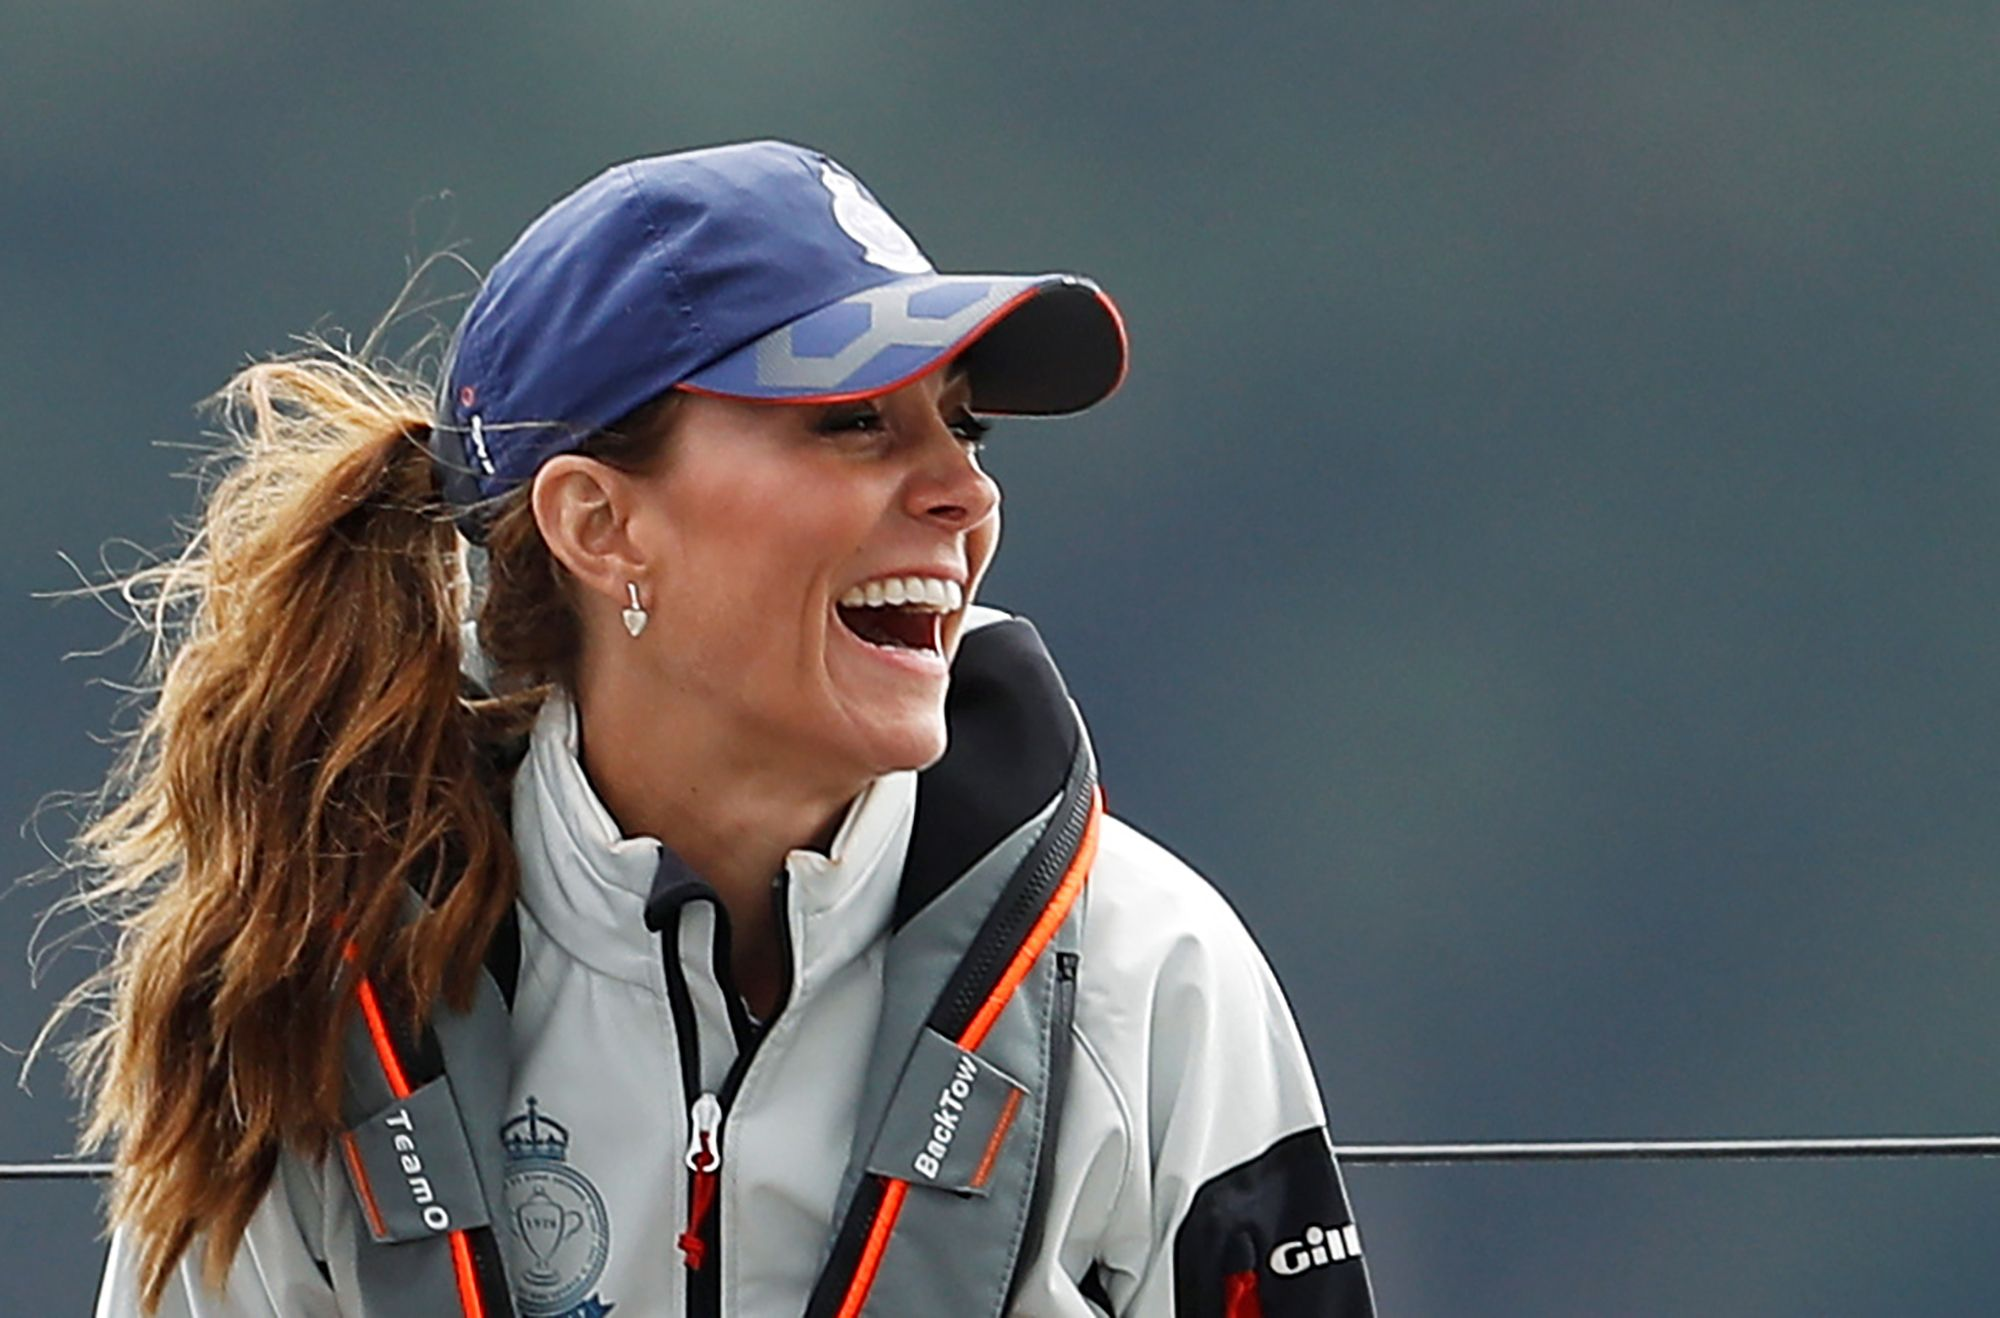 Kate Middleton and Prince William Race Against Each Other in the King's Cup Regatta